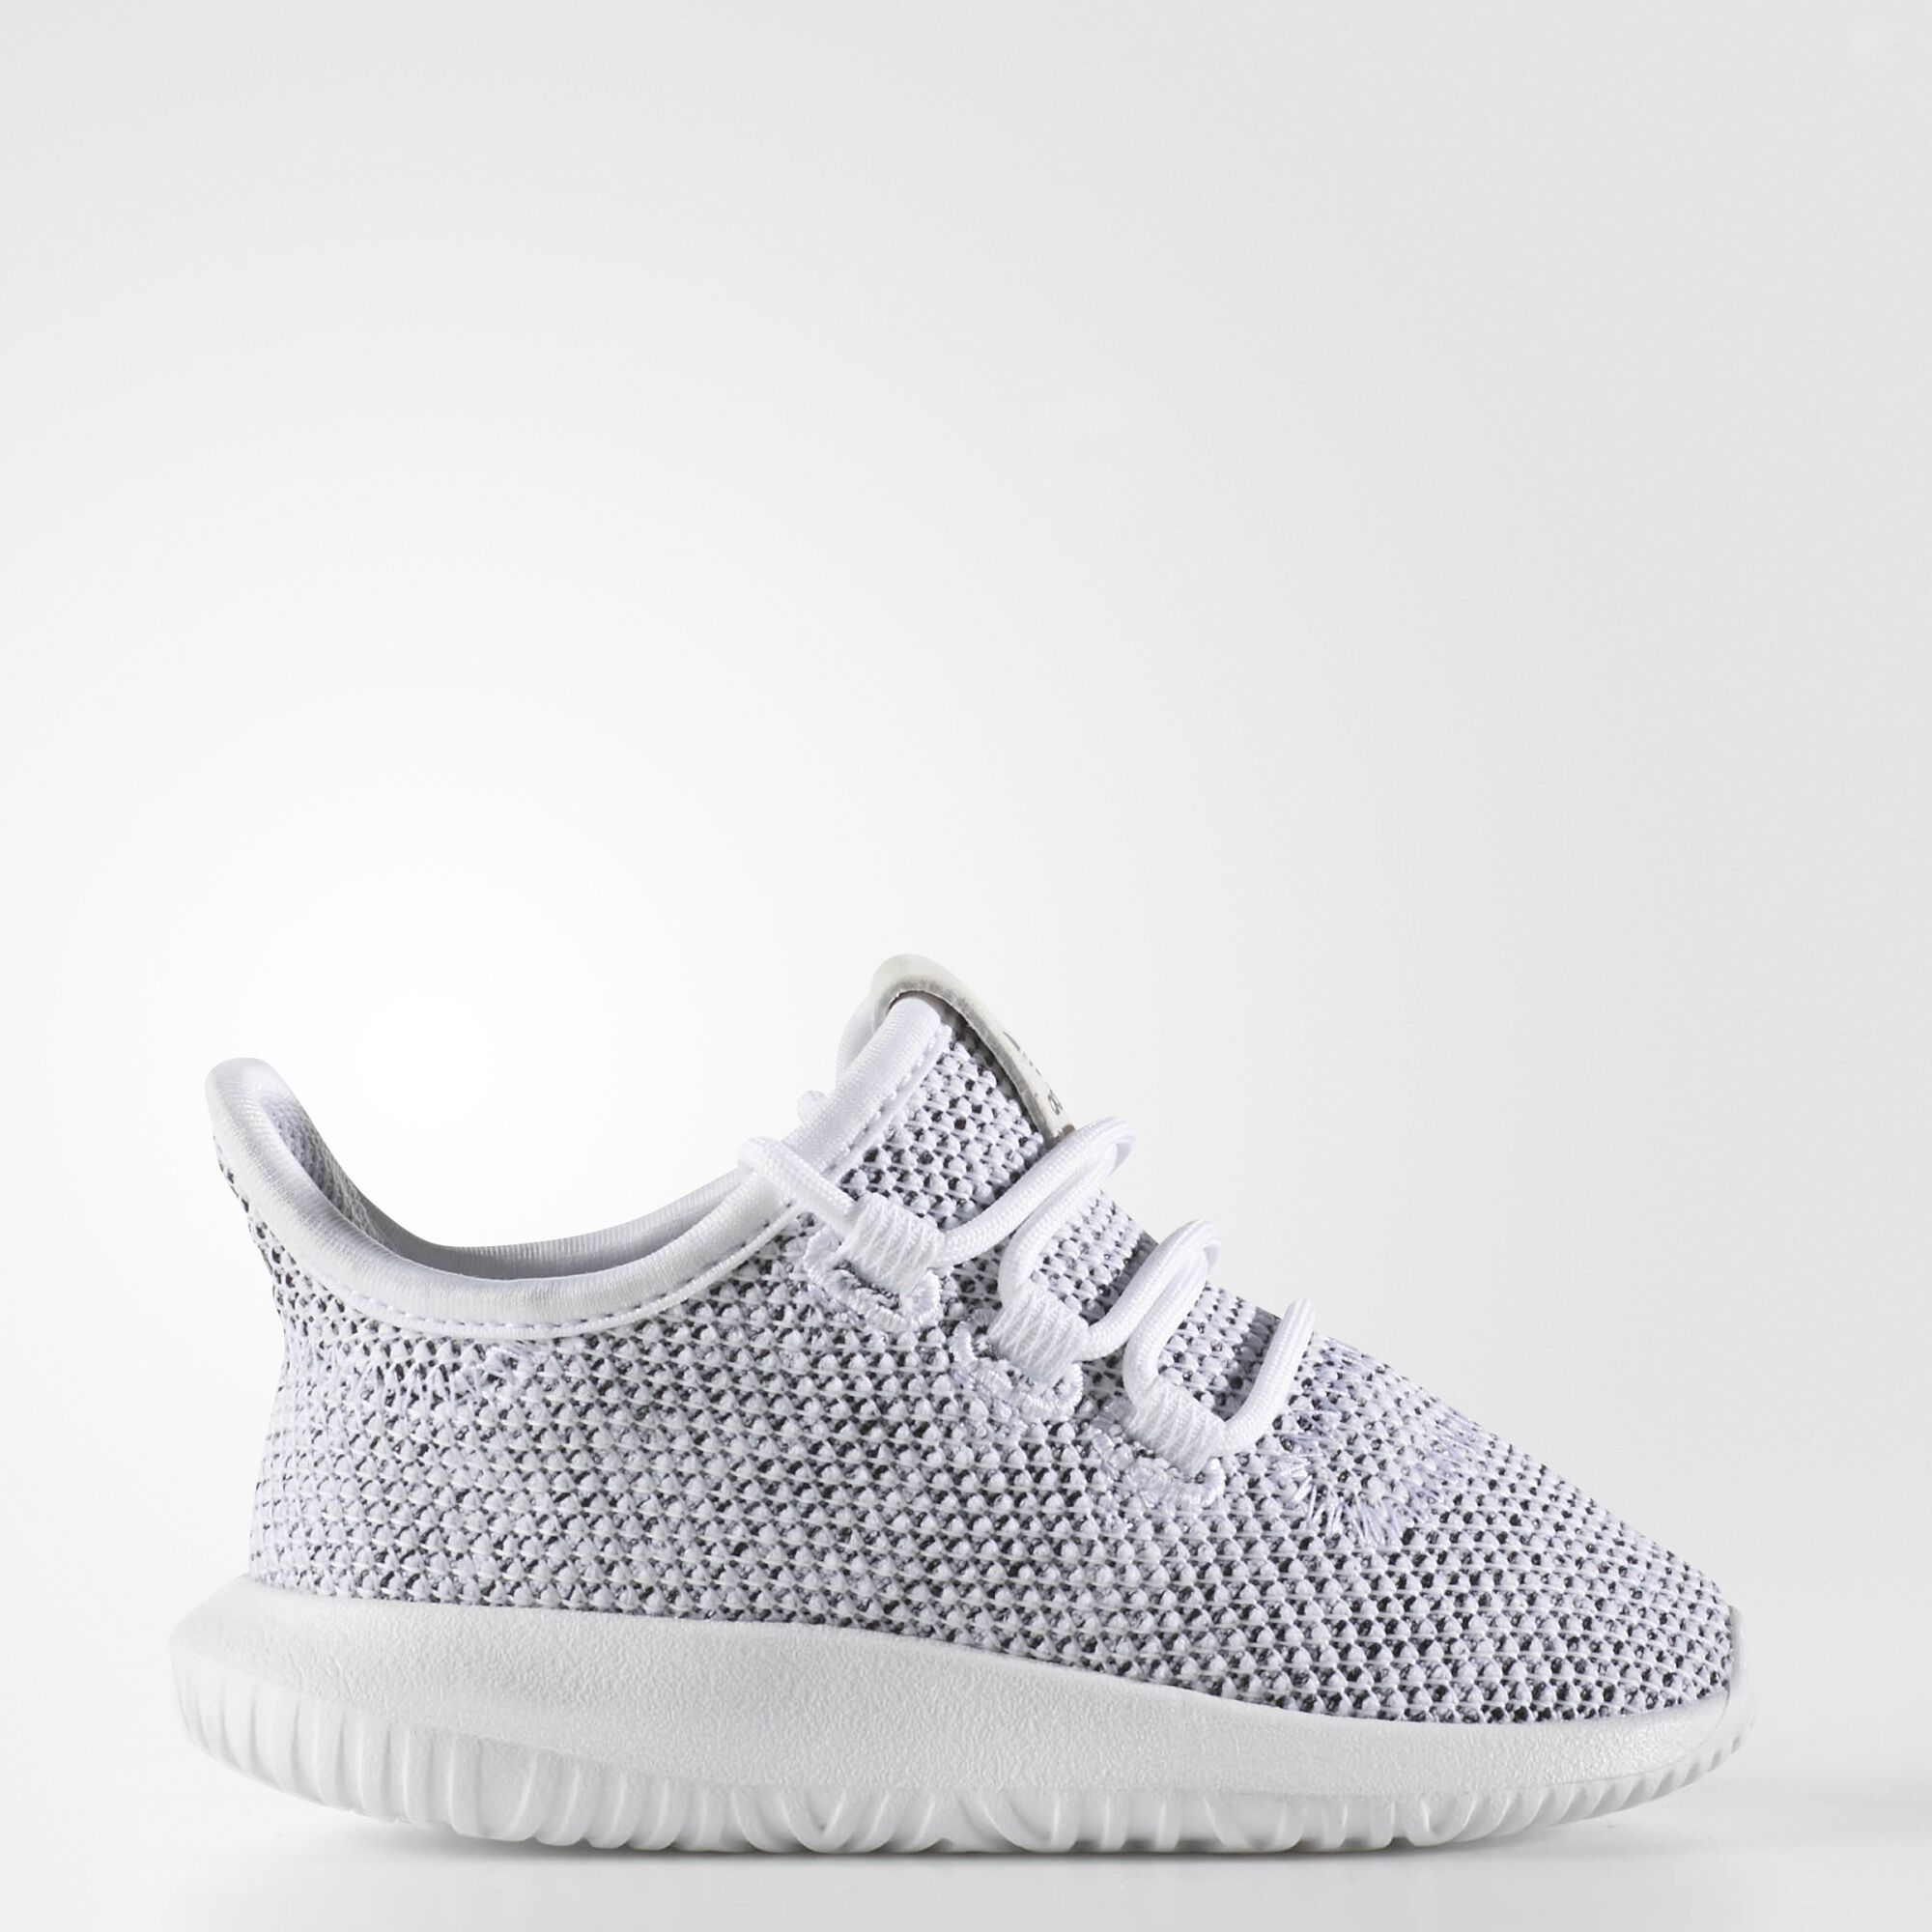 Adidas Originals Tubular Shadow Boys 'Grade Kids